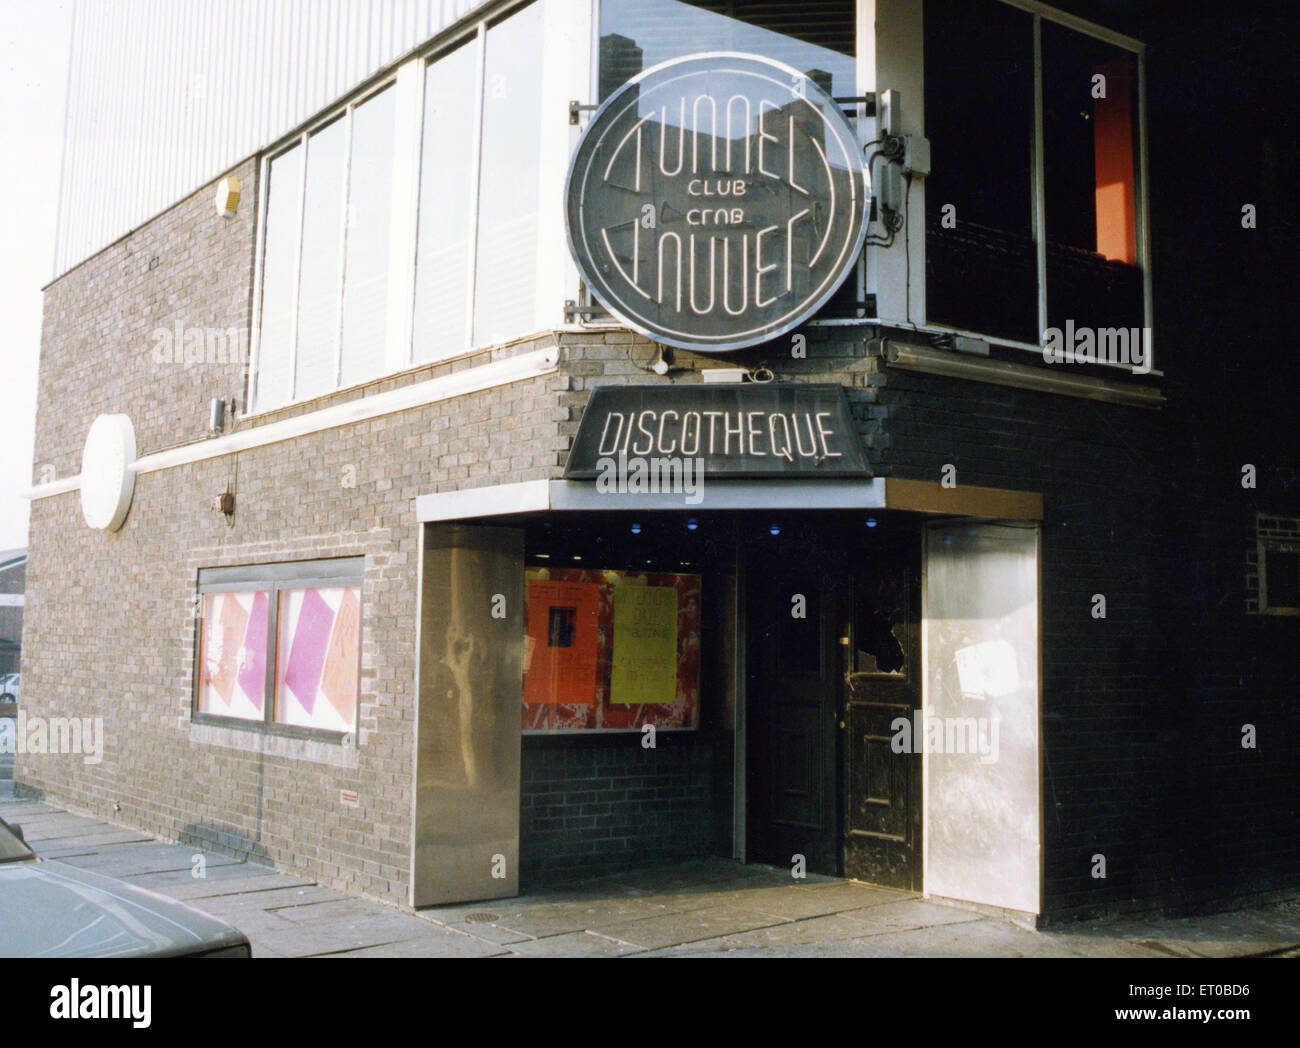 The Tunnel nightclub in South Shields, Tyne and Wear. 15th December 1991. - Stock Image